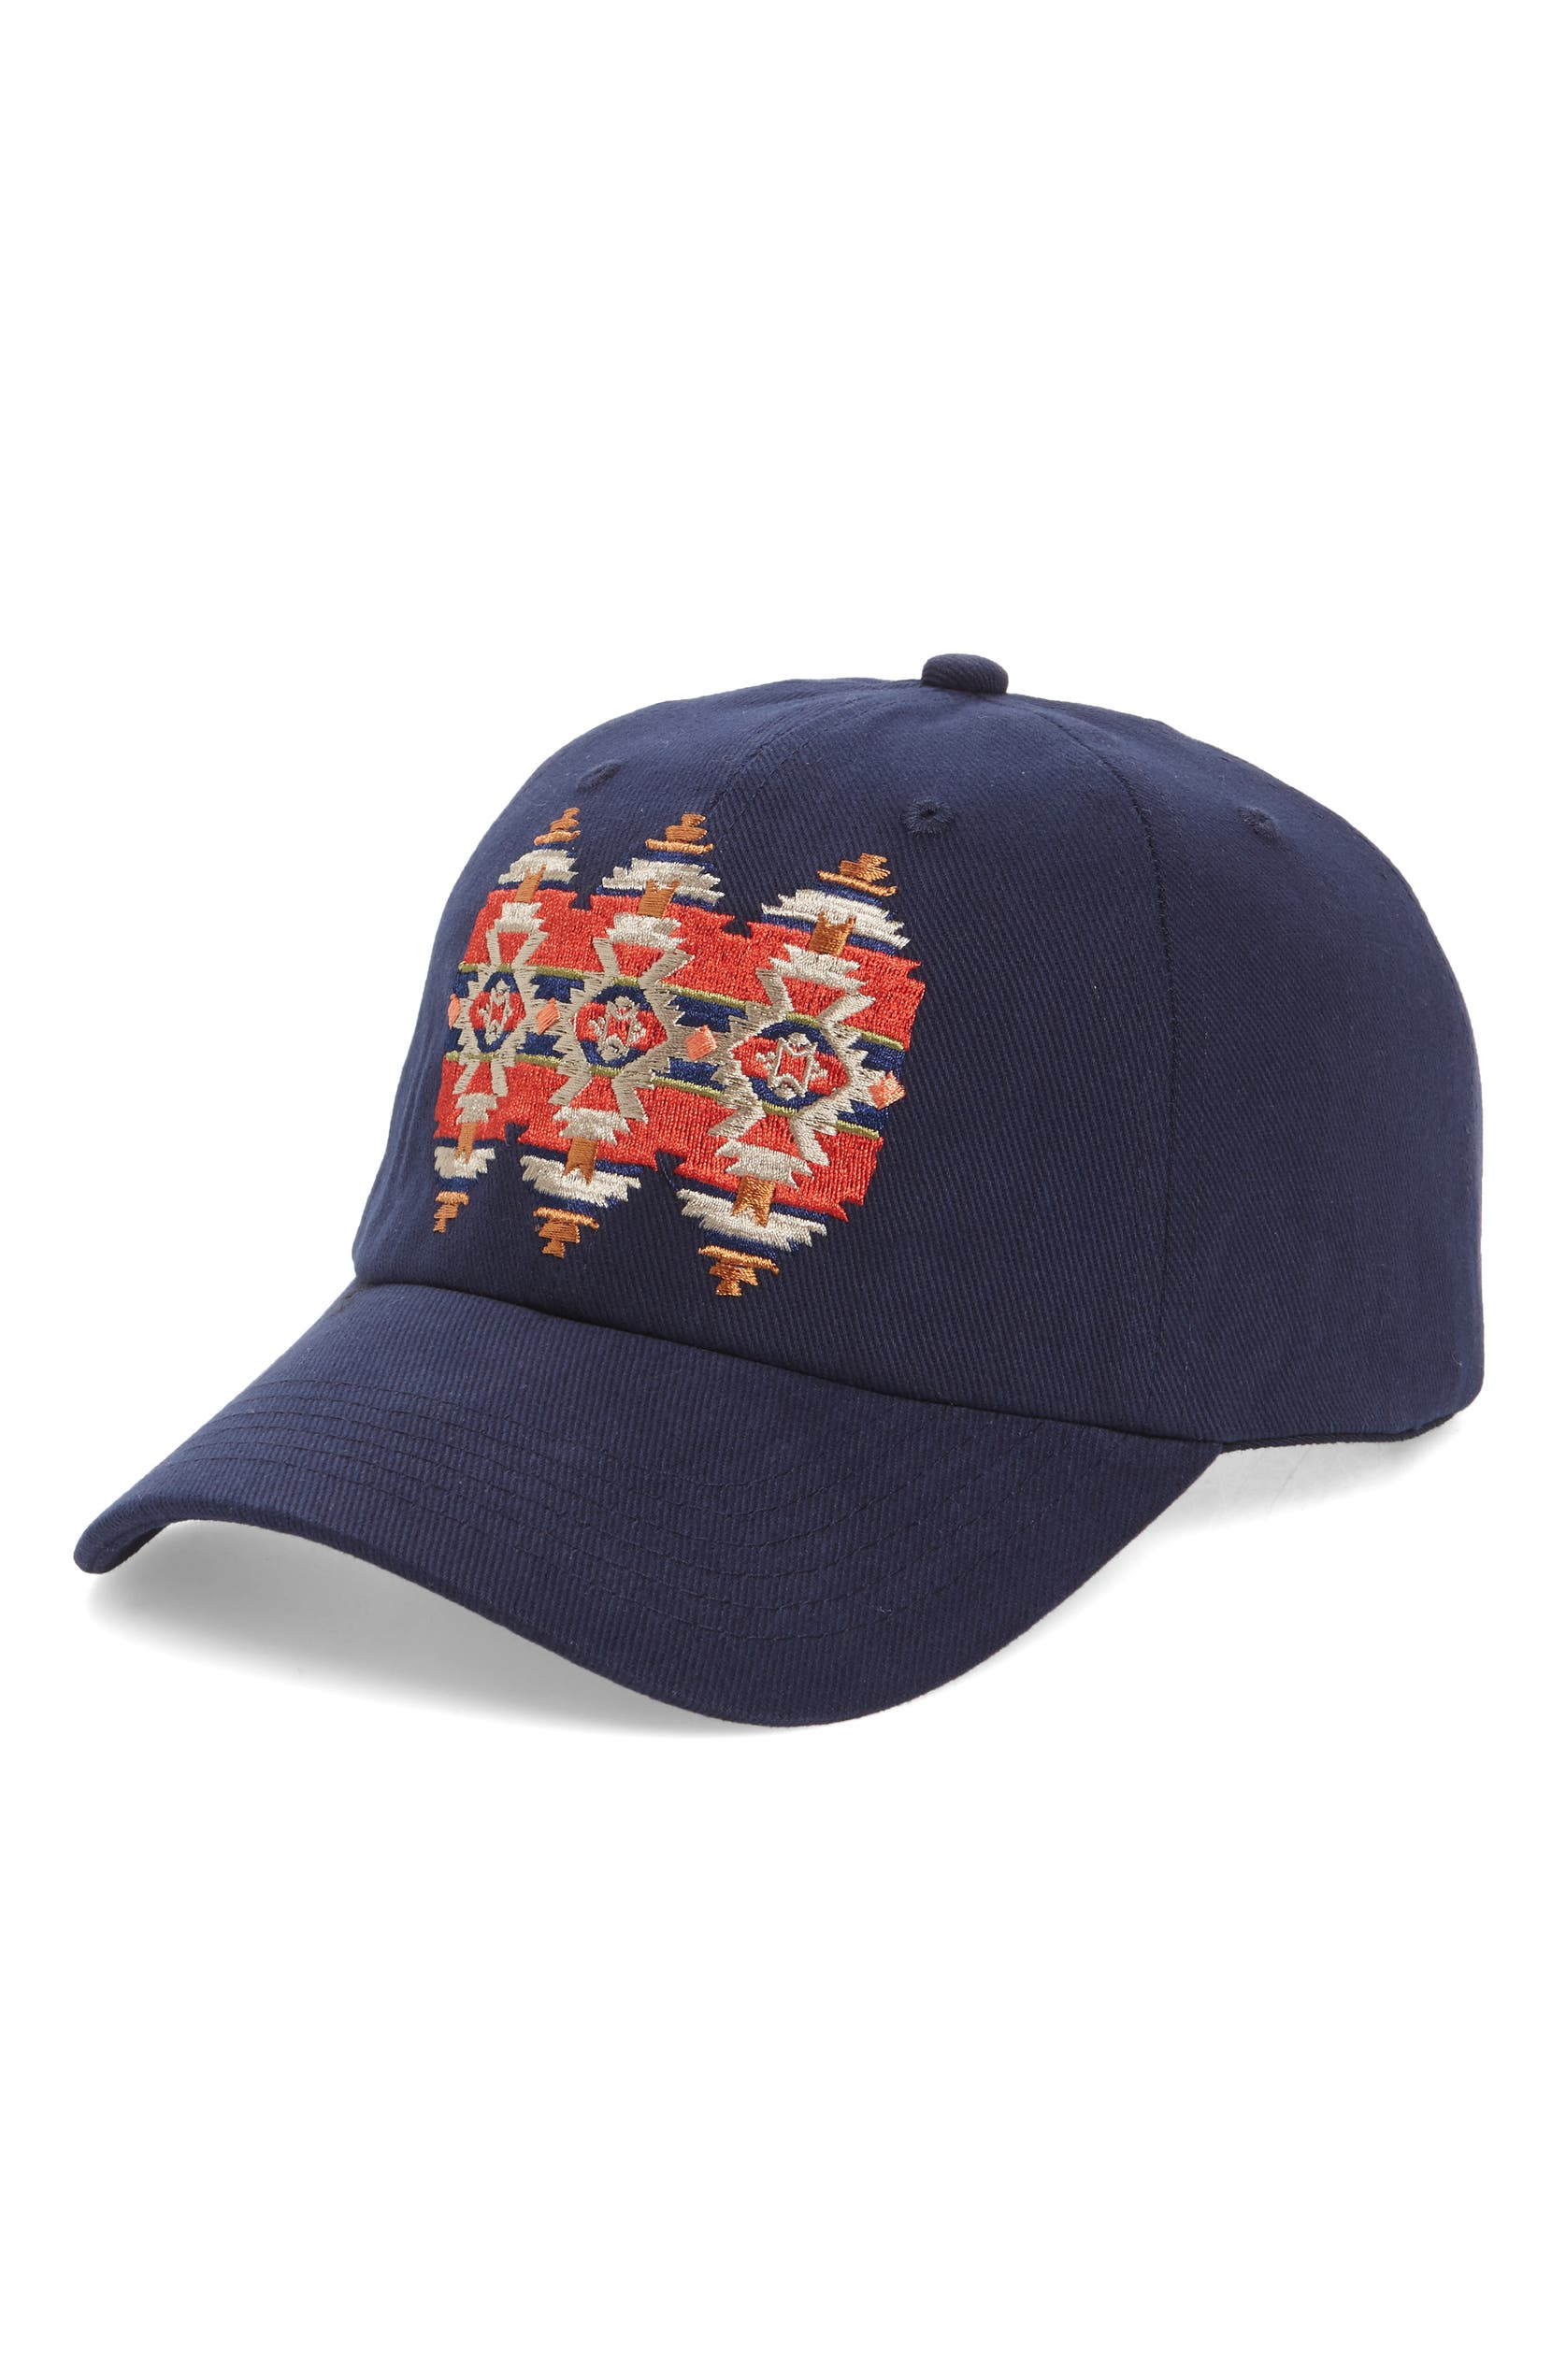 Pendleton Embroidered Ball Cap  7adcf202d39